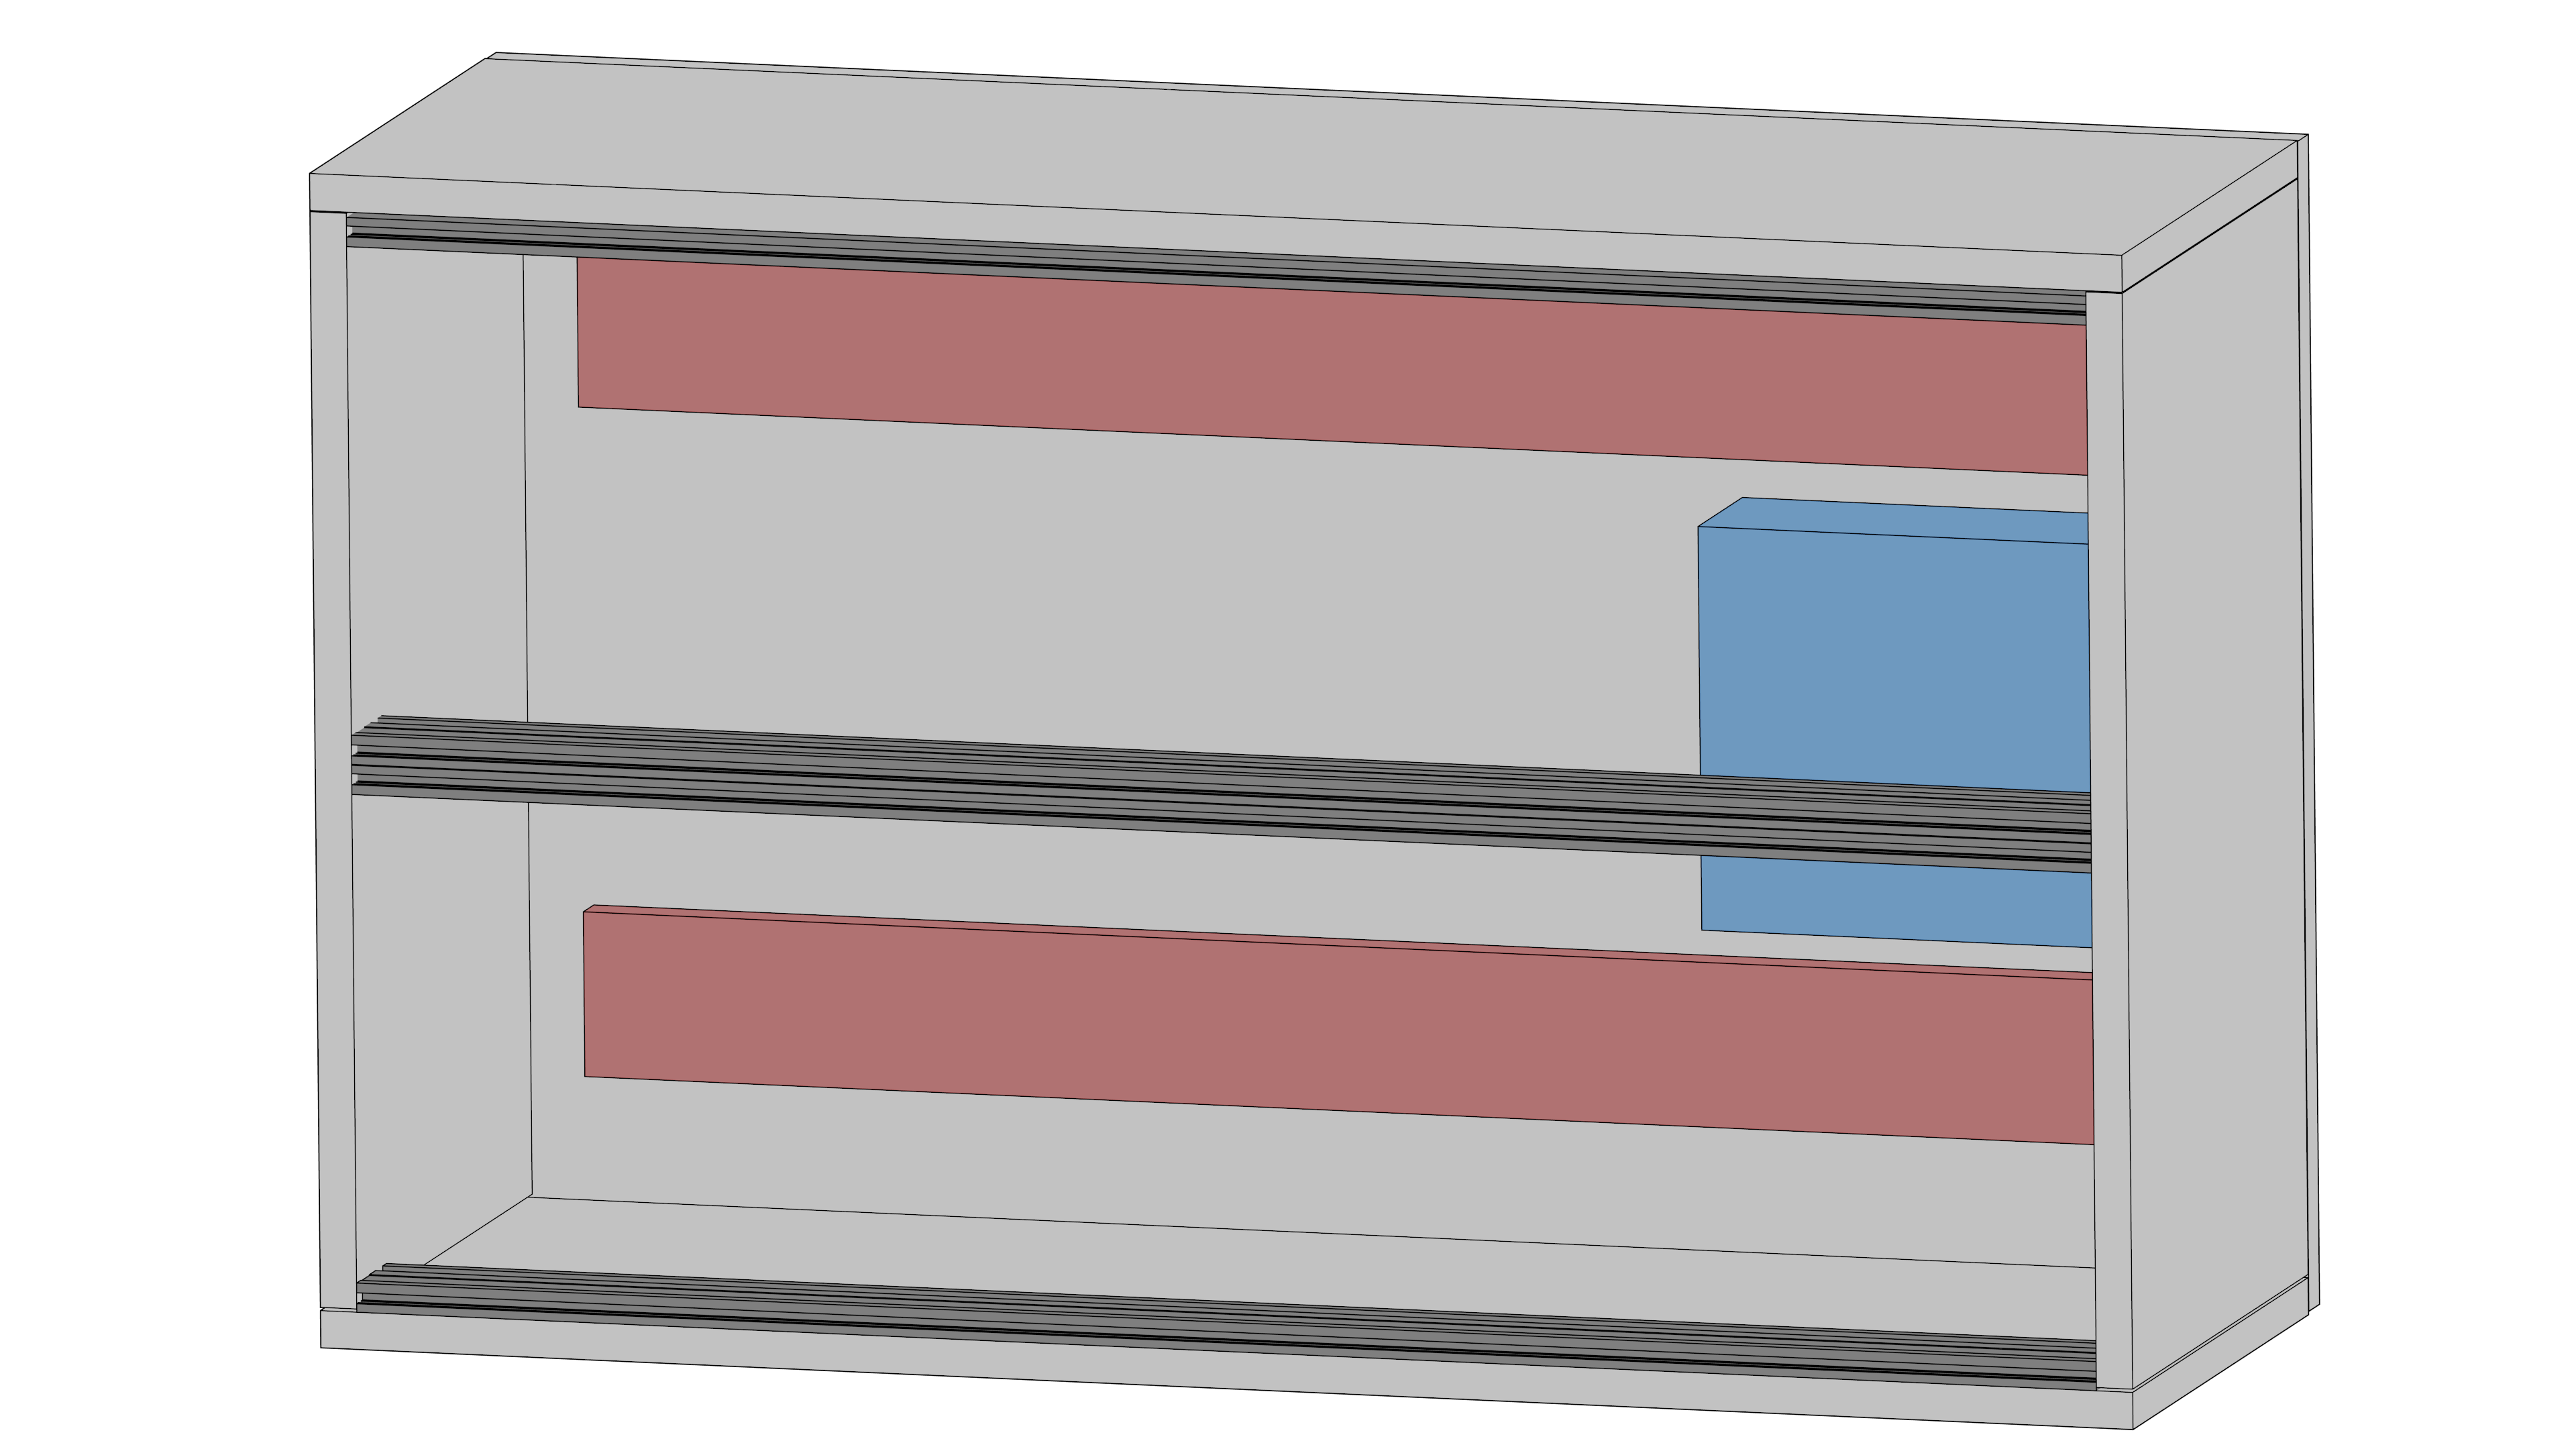 simplecase/images/simplecase_two_rows.png